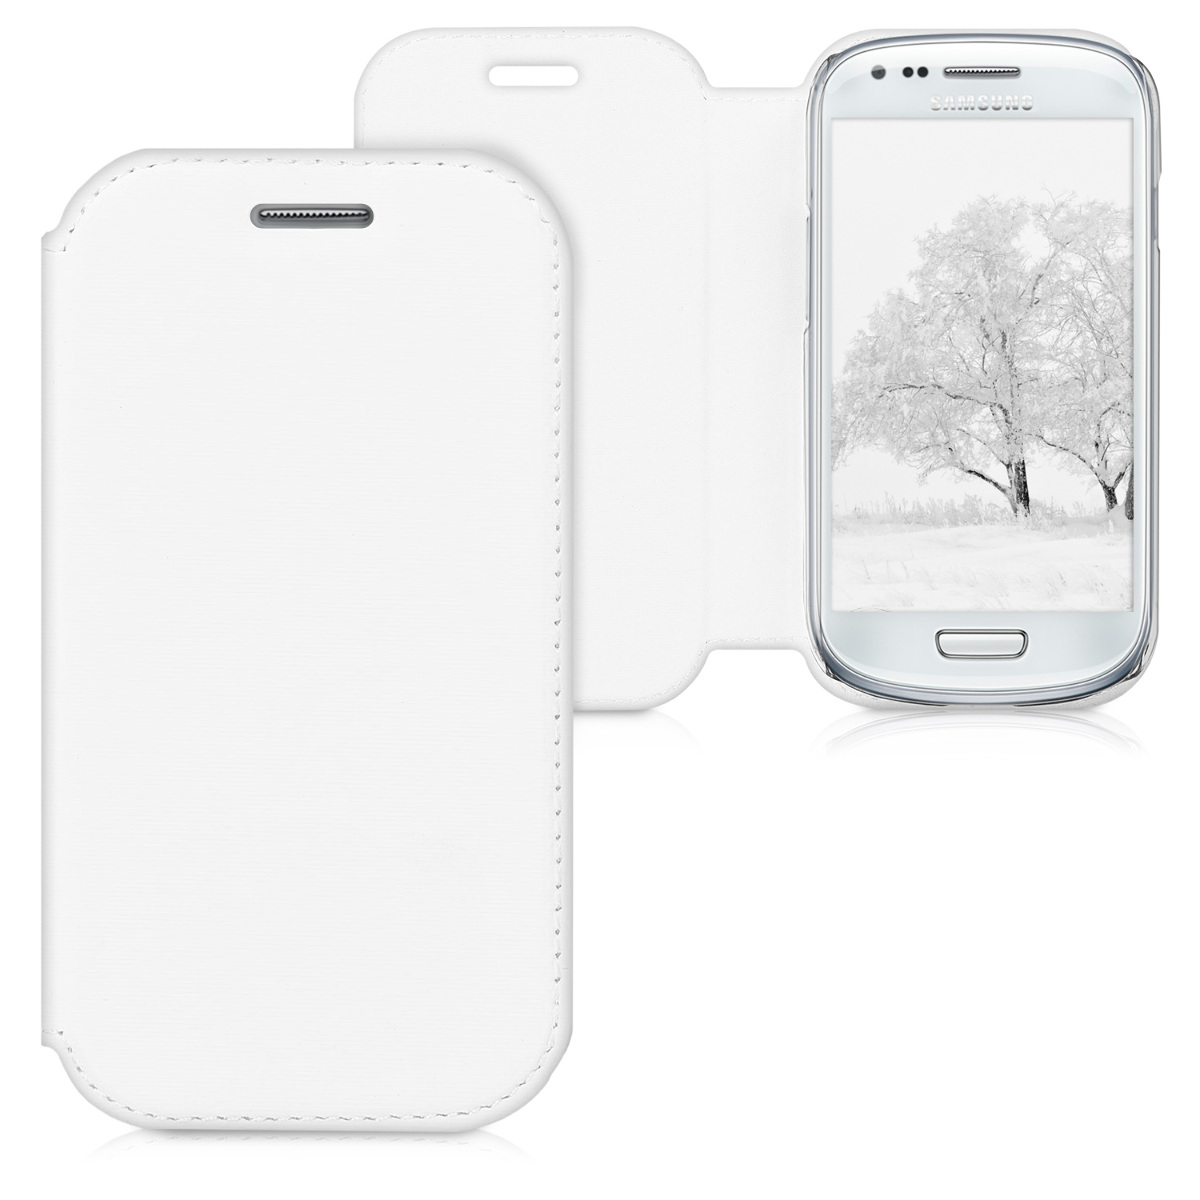 samsung galaxy s3 white case the image. Black Bedroom Furniture Sets. Home Design Ideas